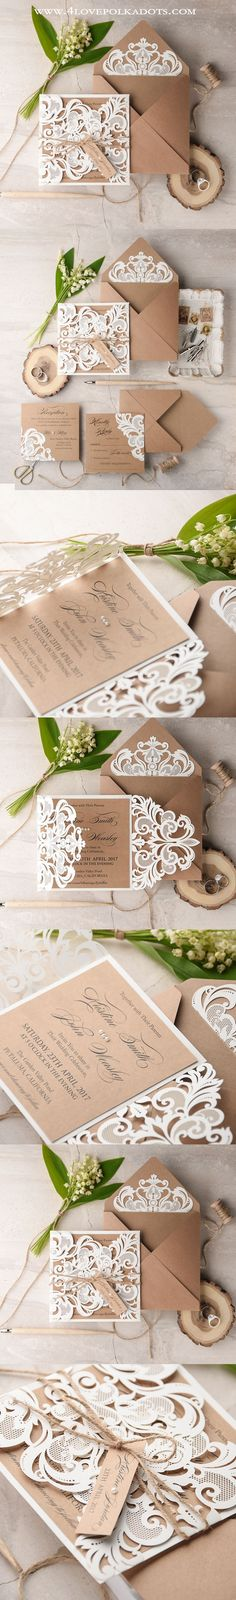 Laser cut Wedding Invitations #weddingideas #weddinginvitations